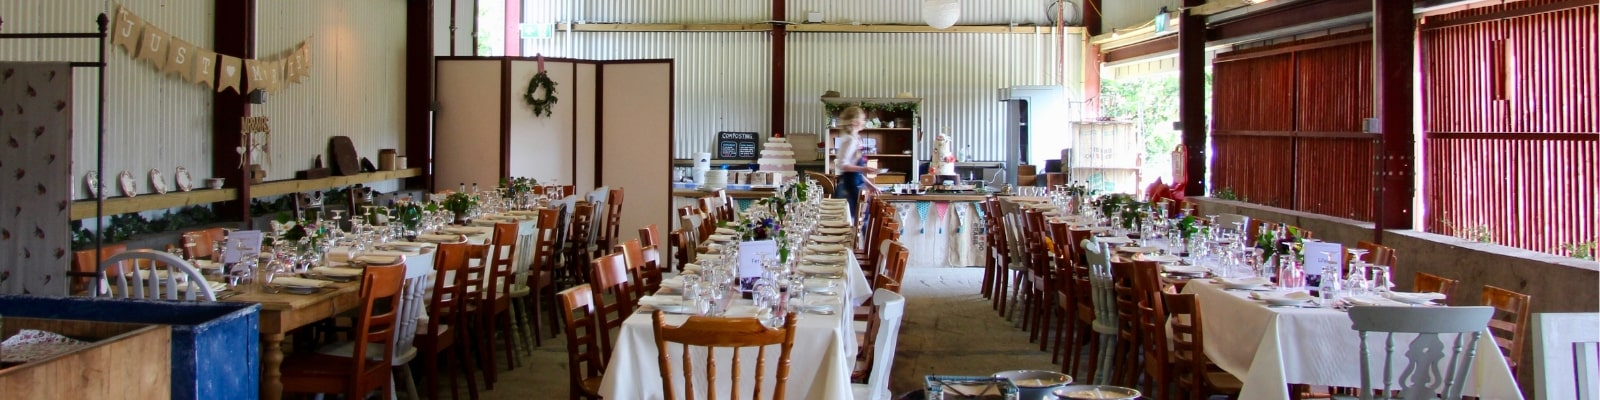 https://www.airfield.ie/wp-content/uploads/2019/02/Barn-Event-at-Airfield-Estate-min.jpg